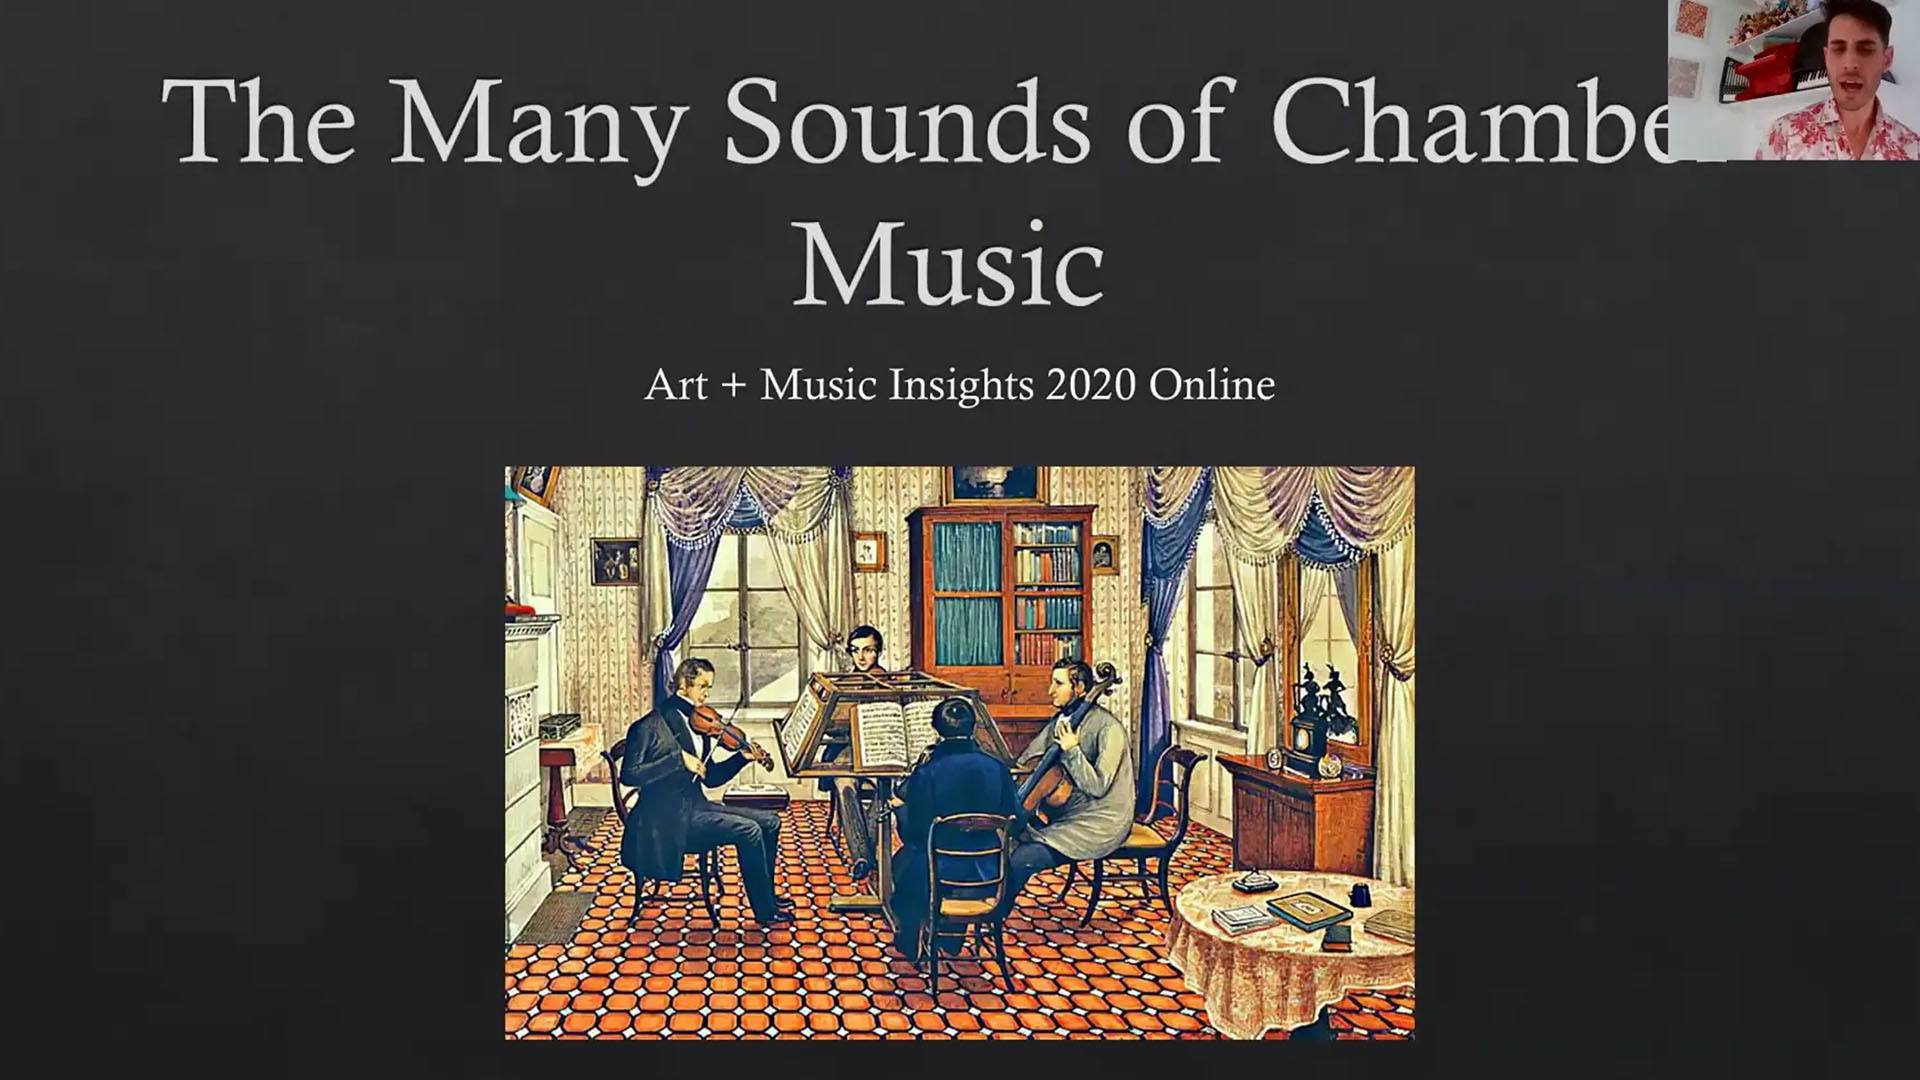 The Many Sounds of Chamber Music